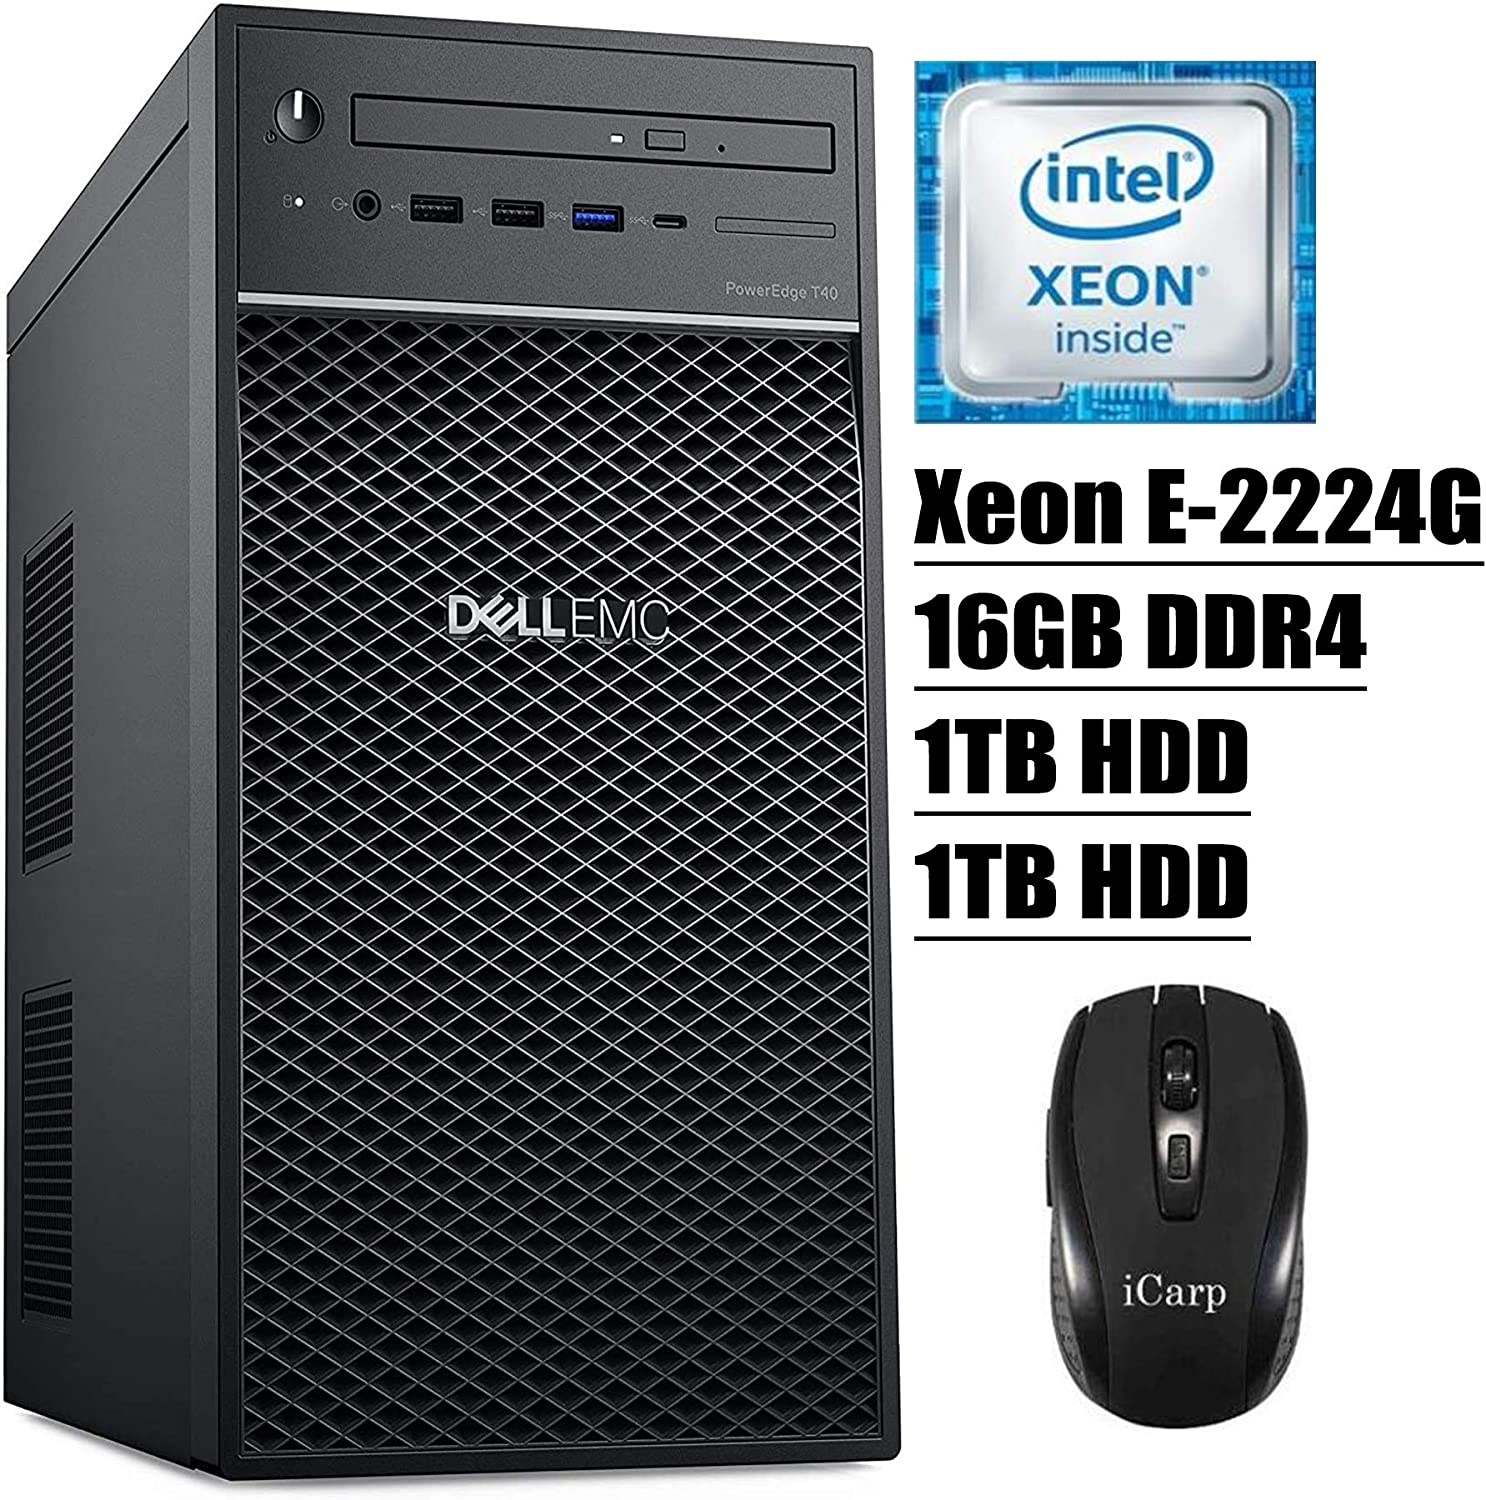 2020 Newest Dell PowerEdge T40 Tower Server Premium Desktop Tower Intel Quad-Core Xeon E-2224G 16GB DDR4 1TB HDD 1TB HDD DVD USB-C Intel UHD Graphics P630 No Operating System + iCarp Wireless Mouse